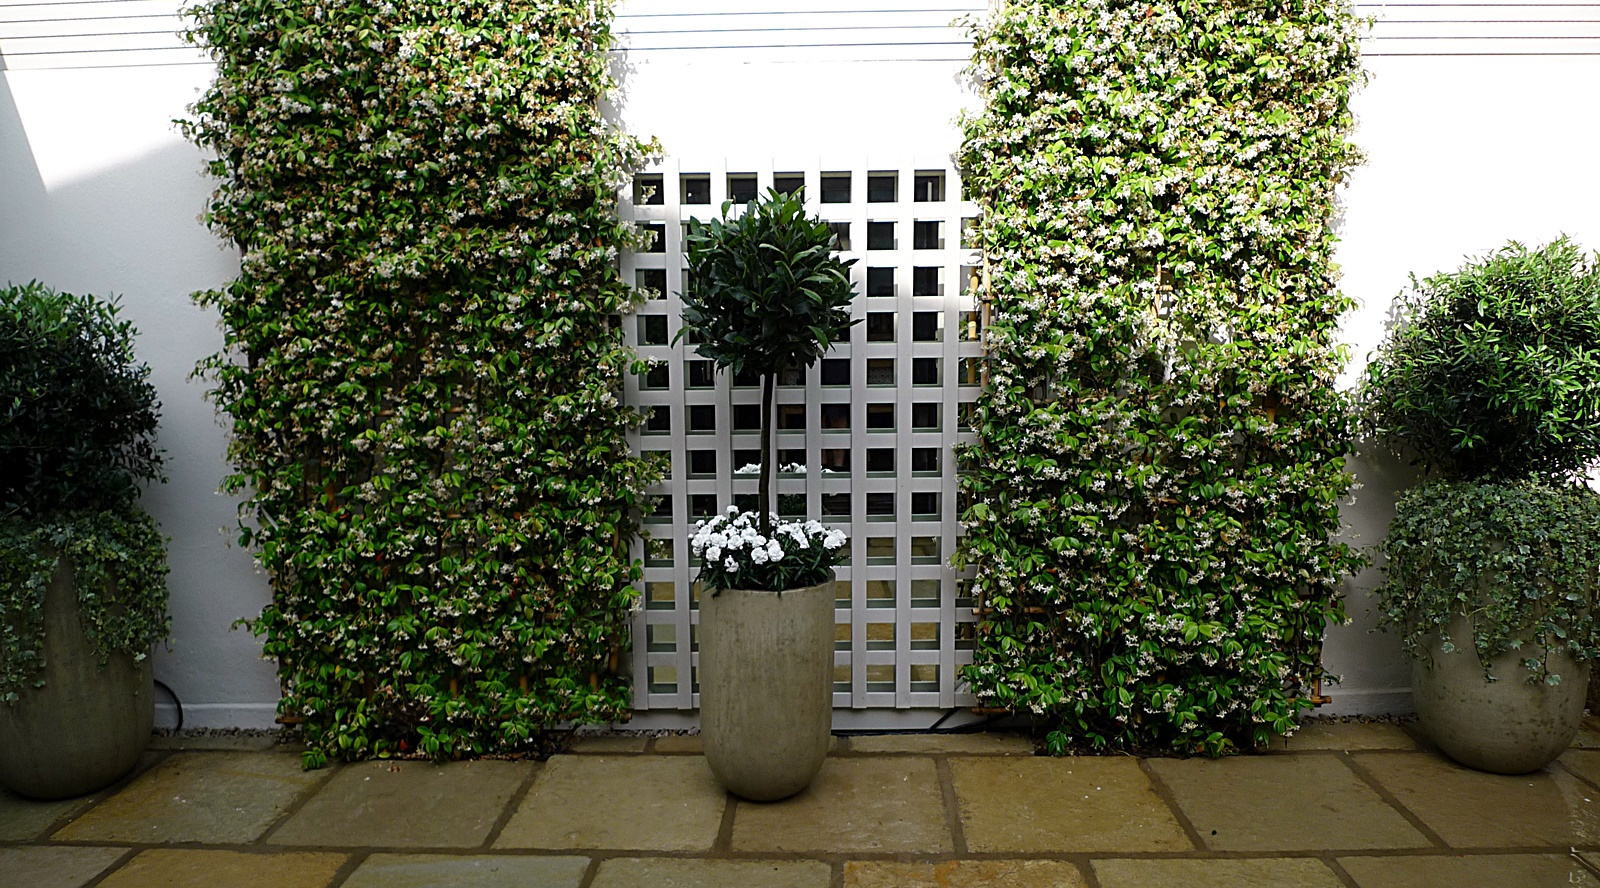 Courtyard minimalist contemporary garden design and designer w1 w2 london